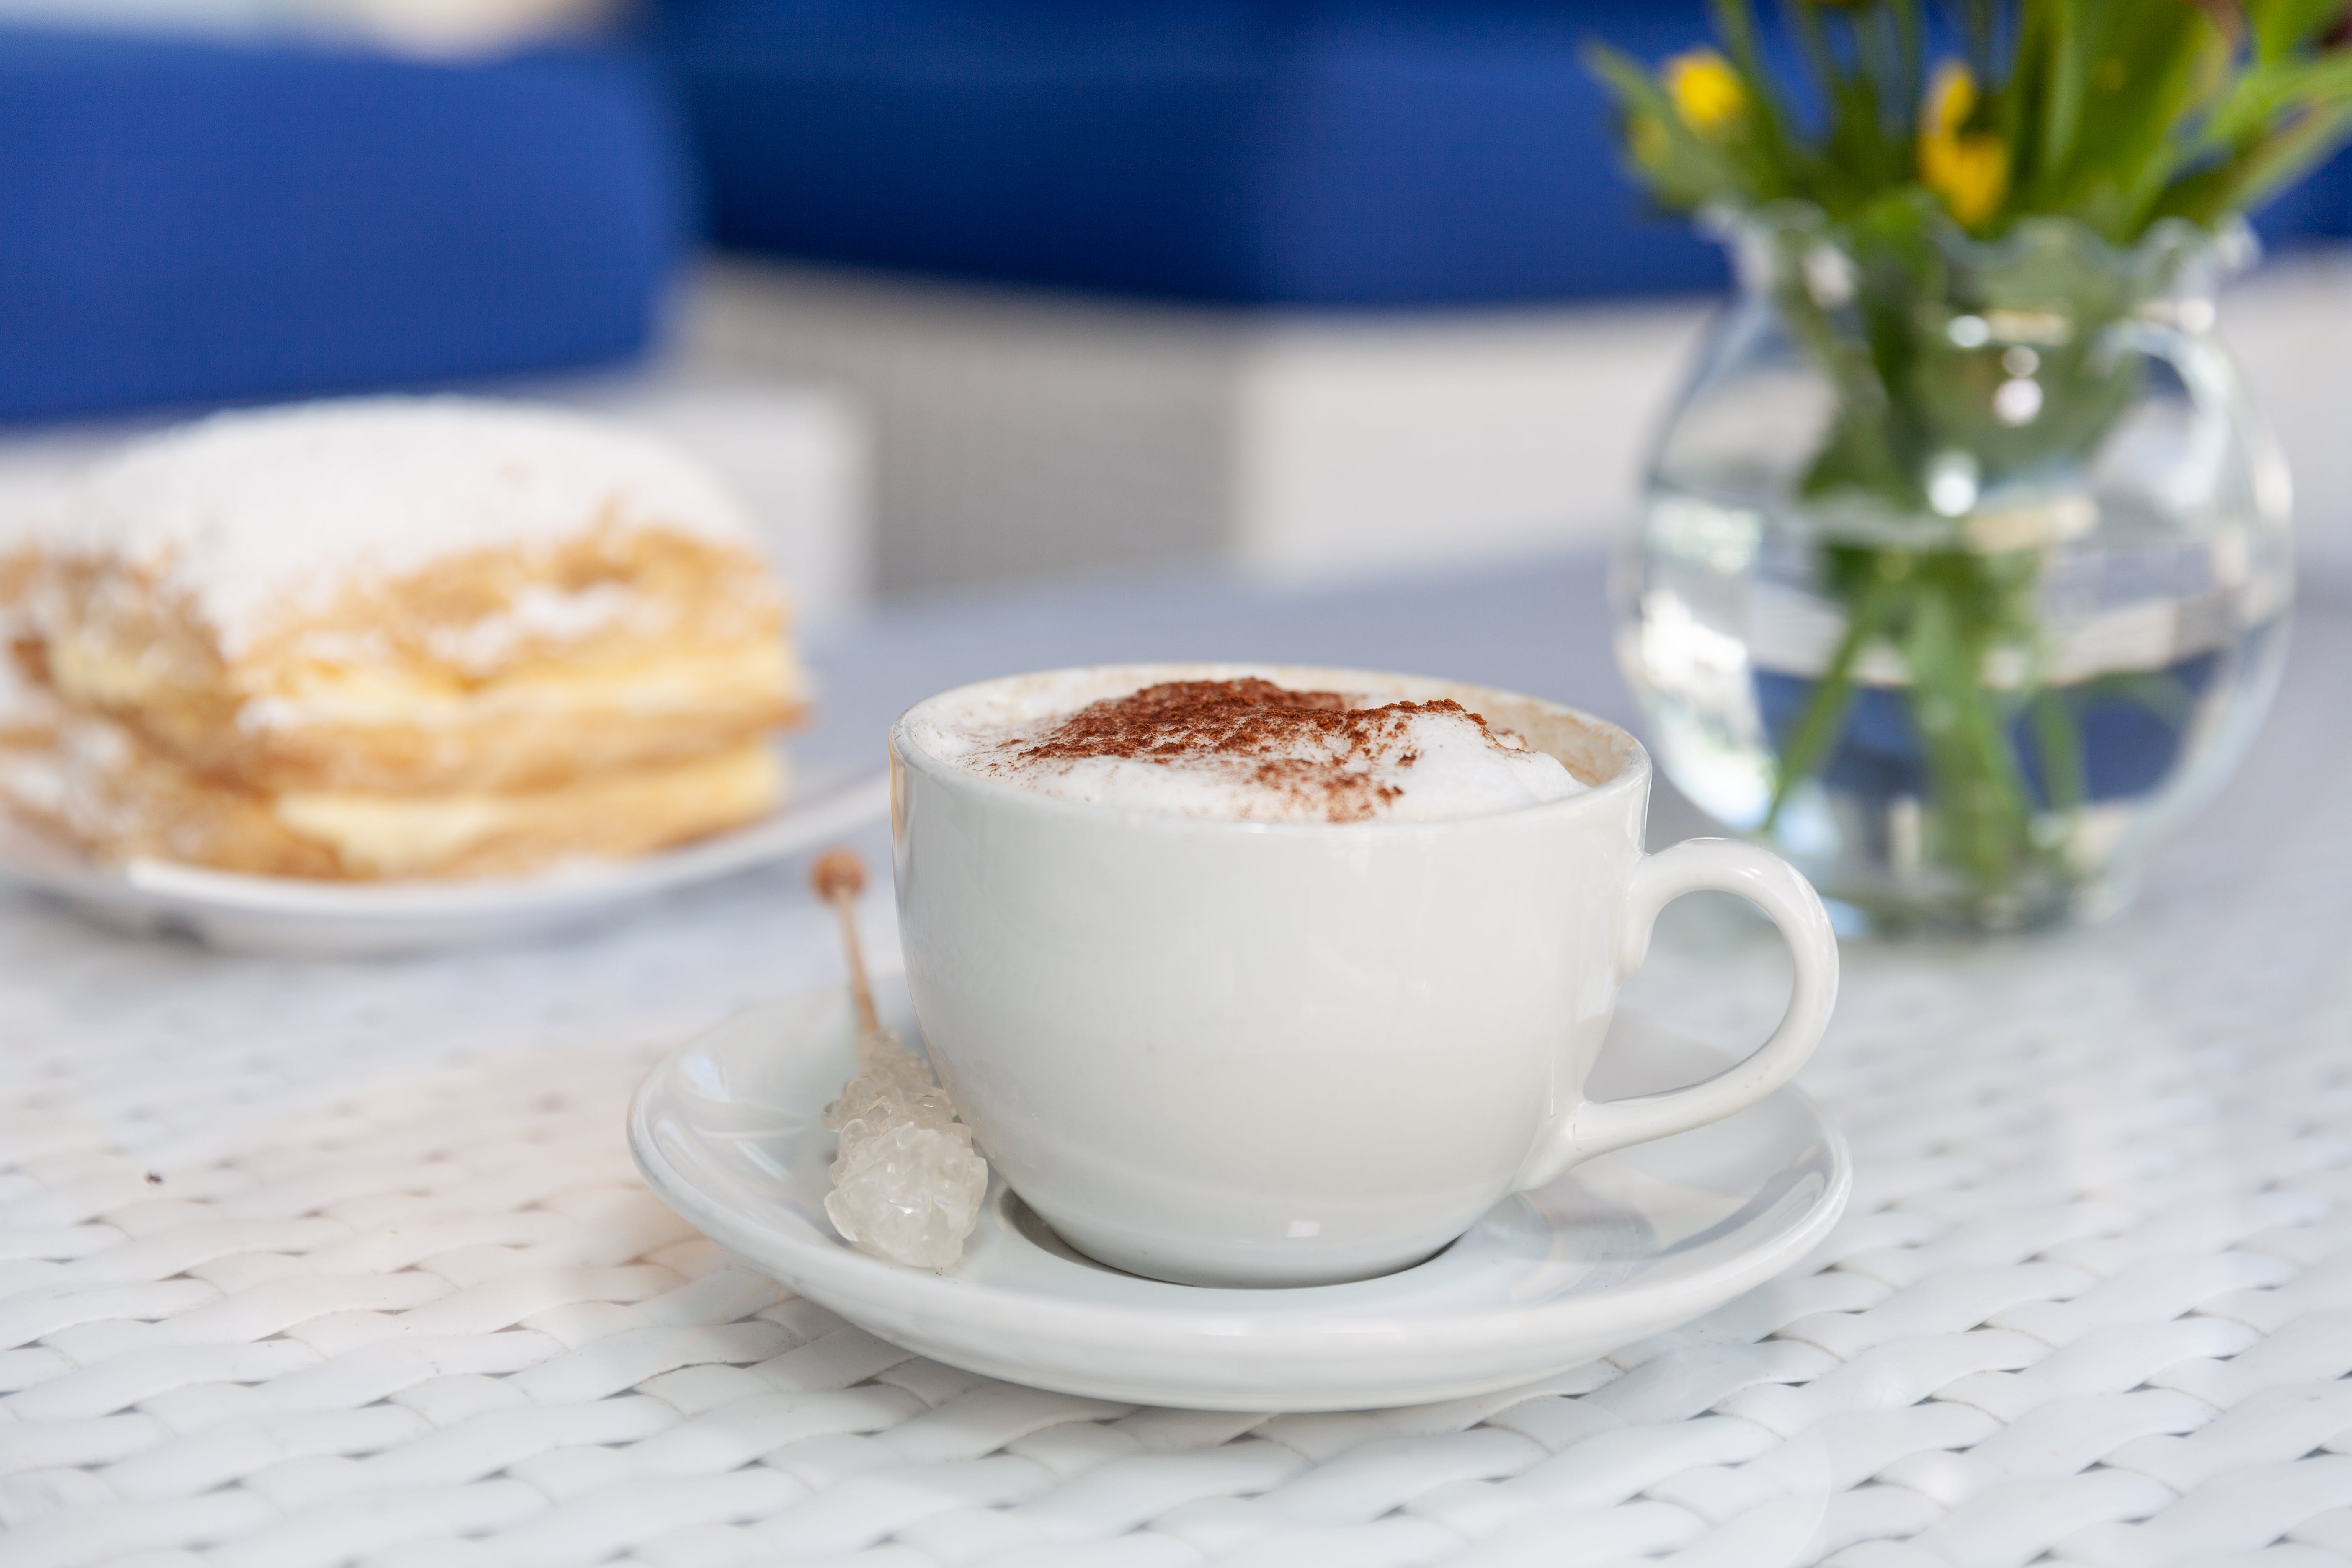 Teacup Filled With Coffee Froth on Saucer